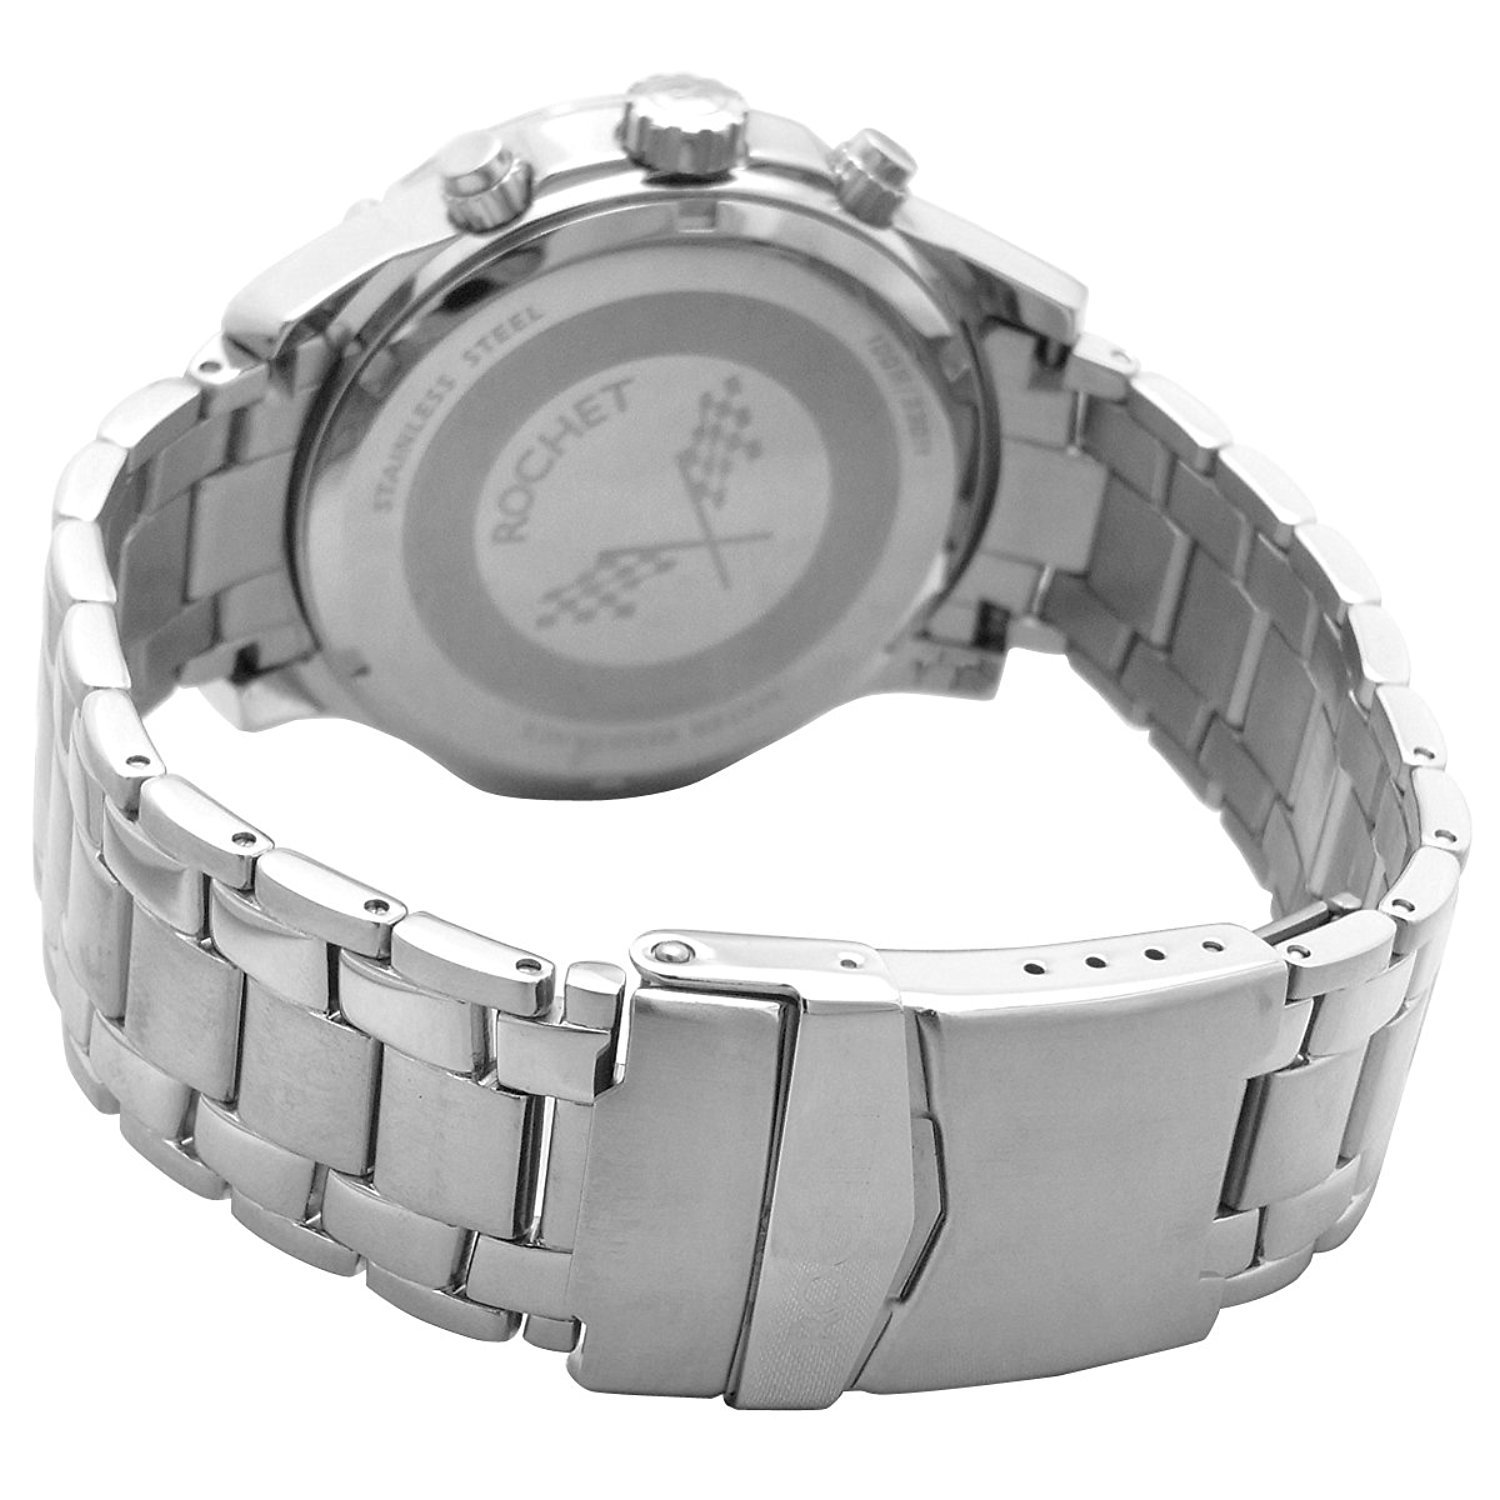 Amazon.com: ROCHET watch MOTOR chronograph watch metal band Date Black W107013 Mens [regular imported goods]: Watches